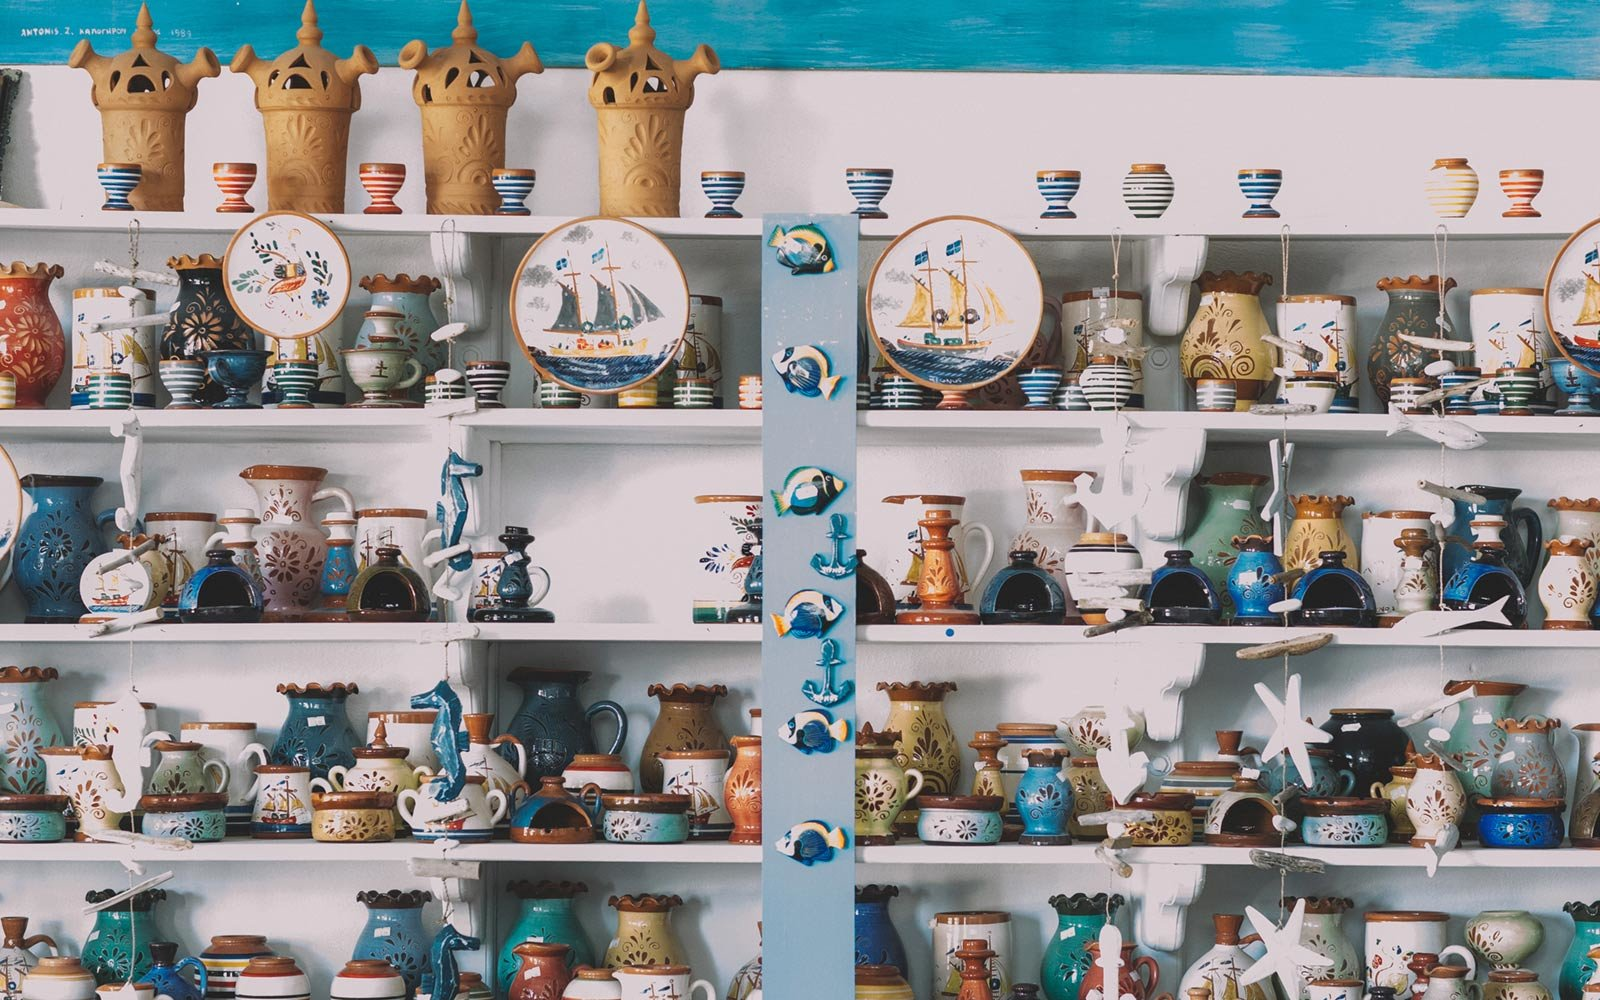 Potter Shop, Sifnos, Greece